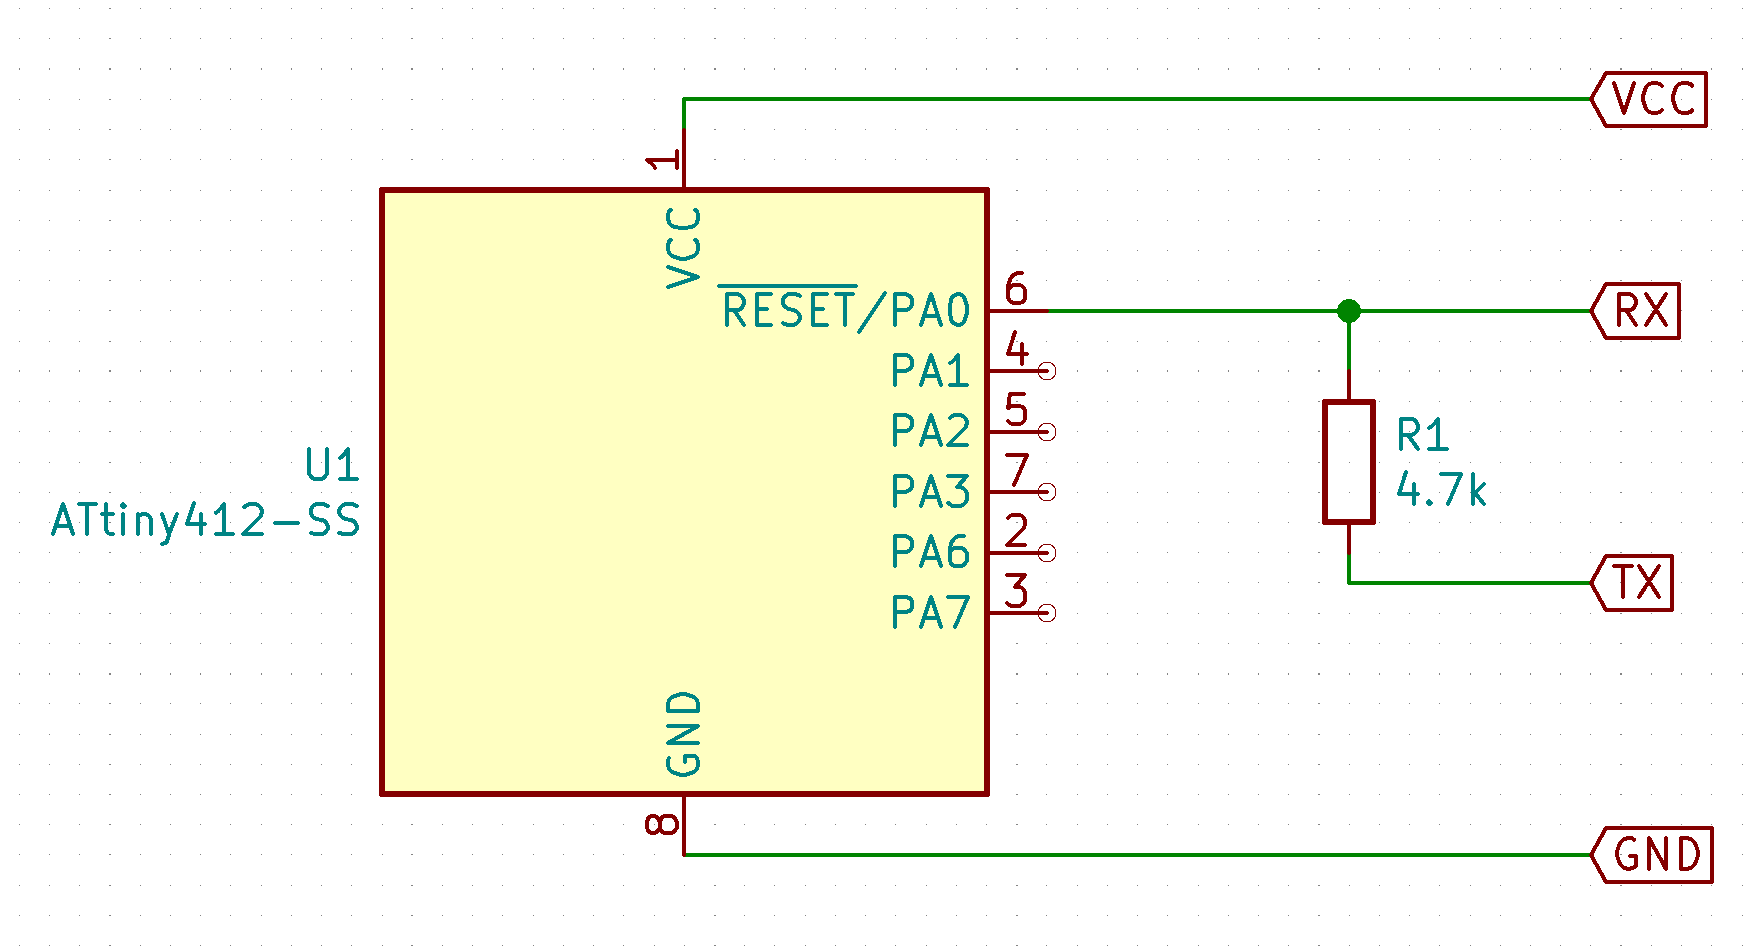 ATtiny412 connections to the UPDI programmer